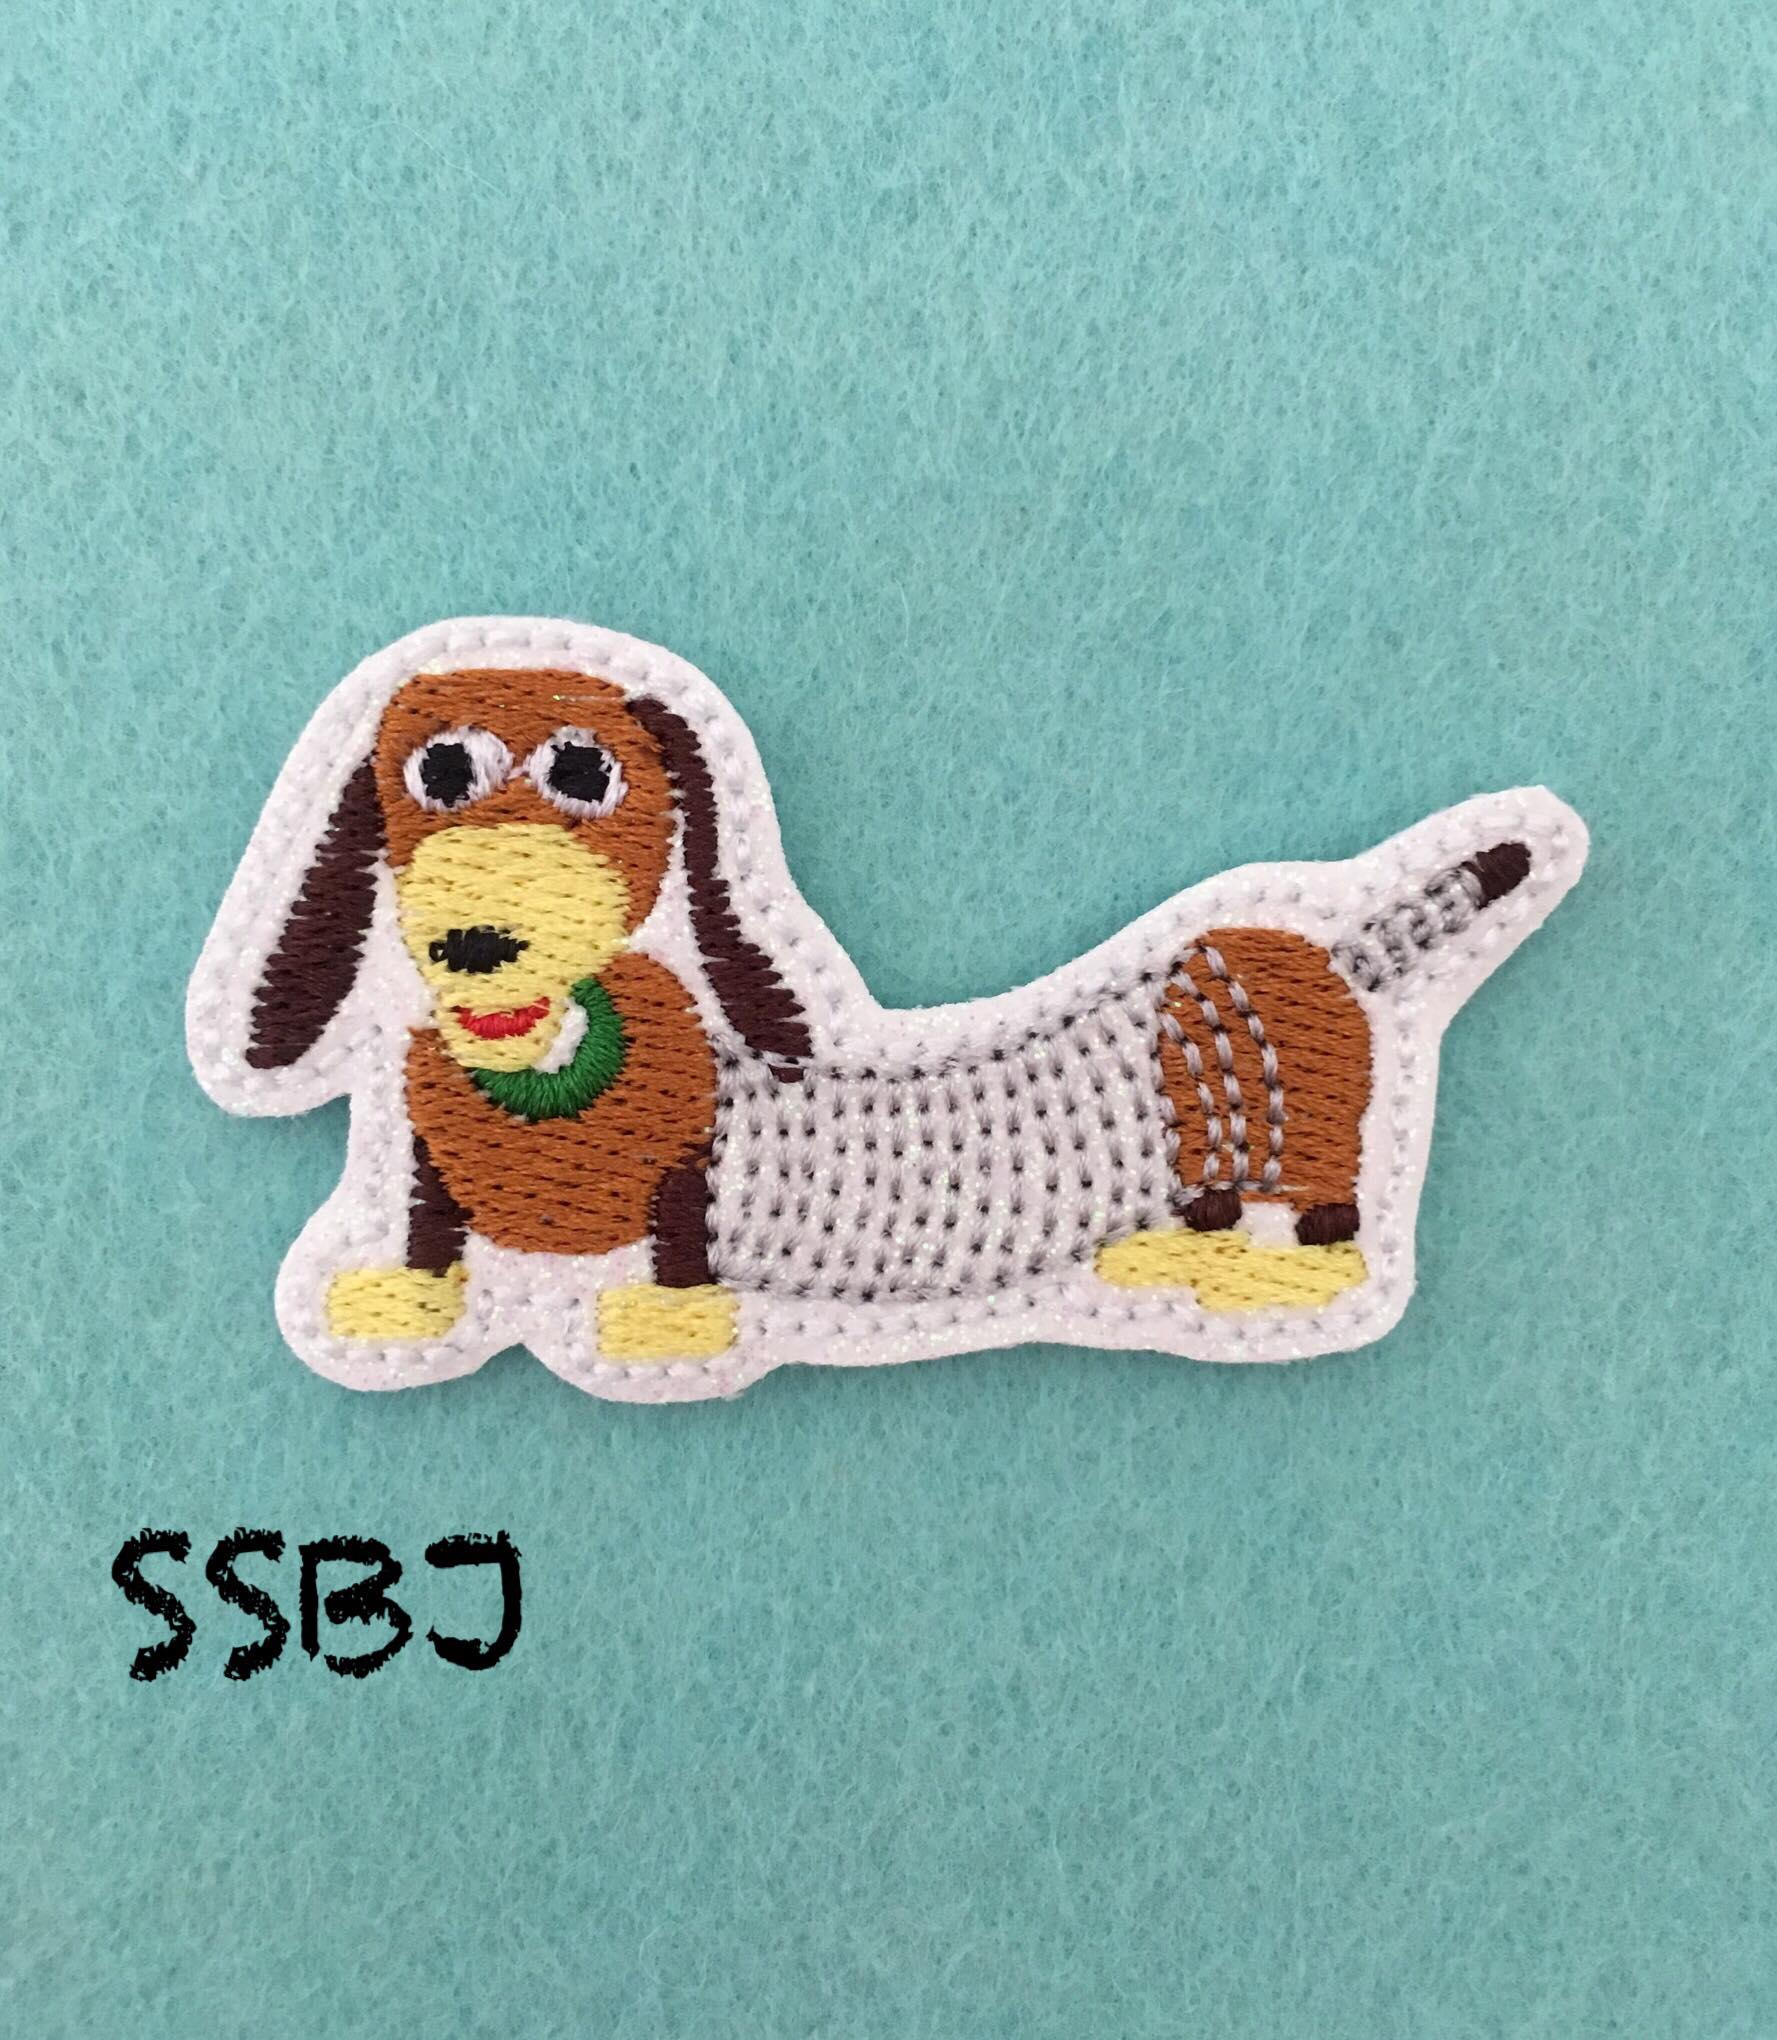 SSBJ Slinky Embroidery File